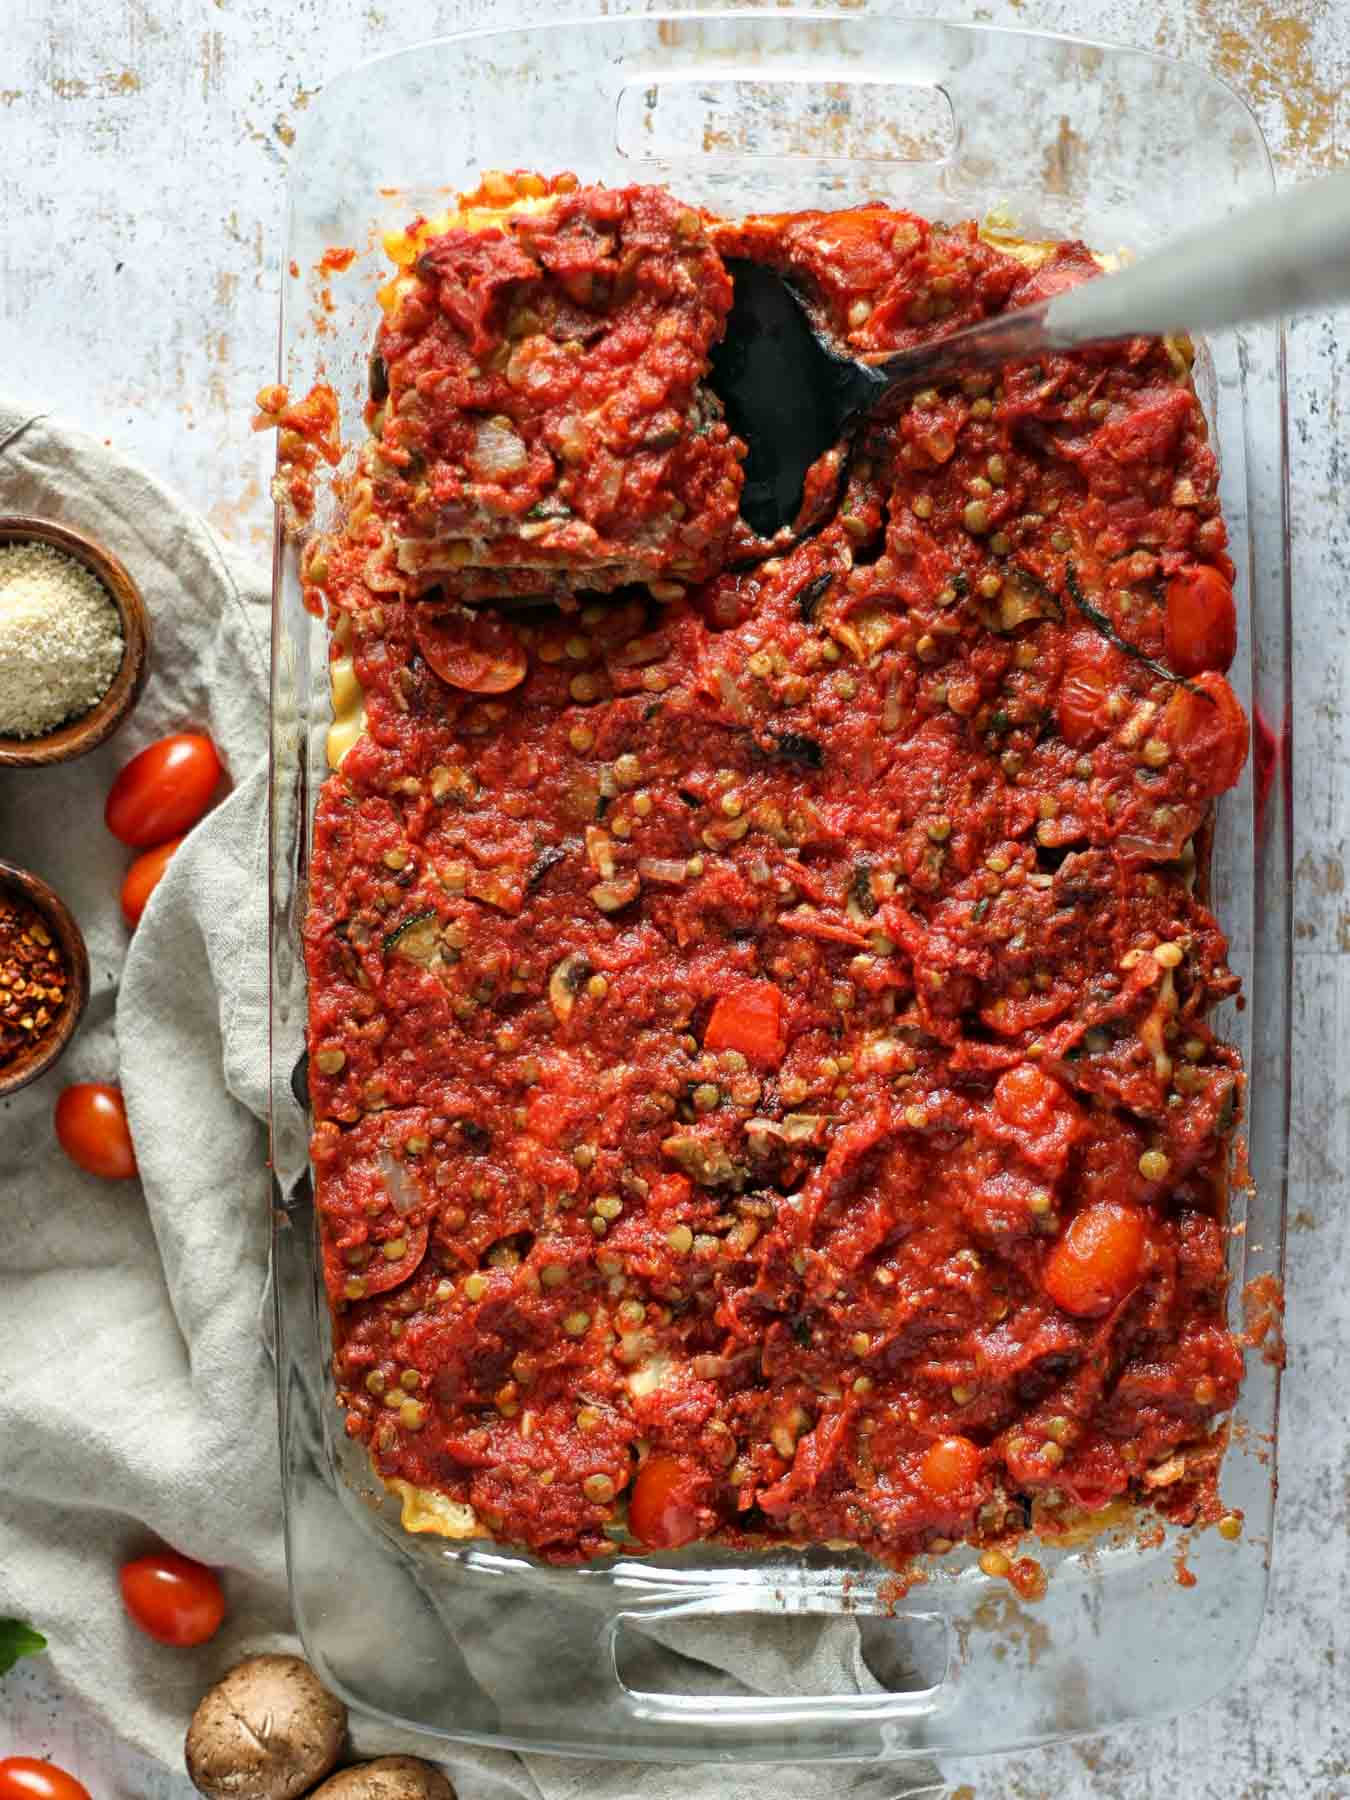 The vegan lasagna consists of four layers: our homemade lentil bolognese sauce, cooked lasagna noodles, homemade almond ricotta cheese and roasted vegetables (eggplant, zucchini, and red pepper)